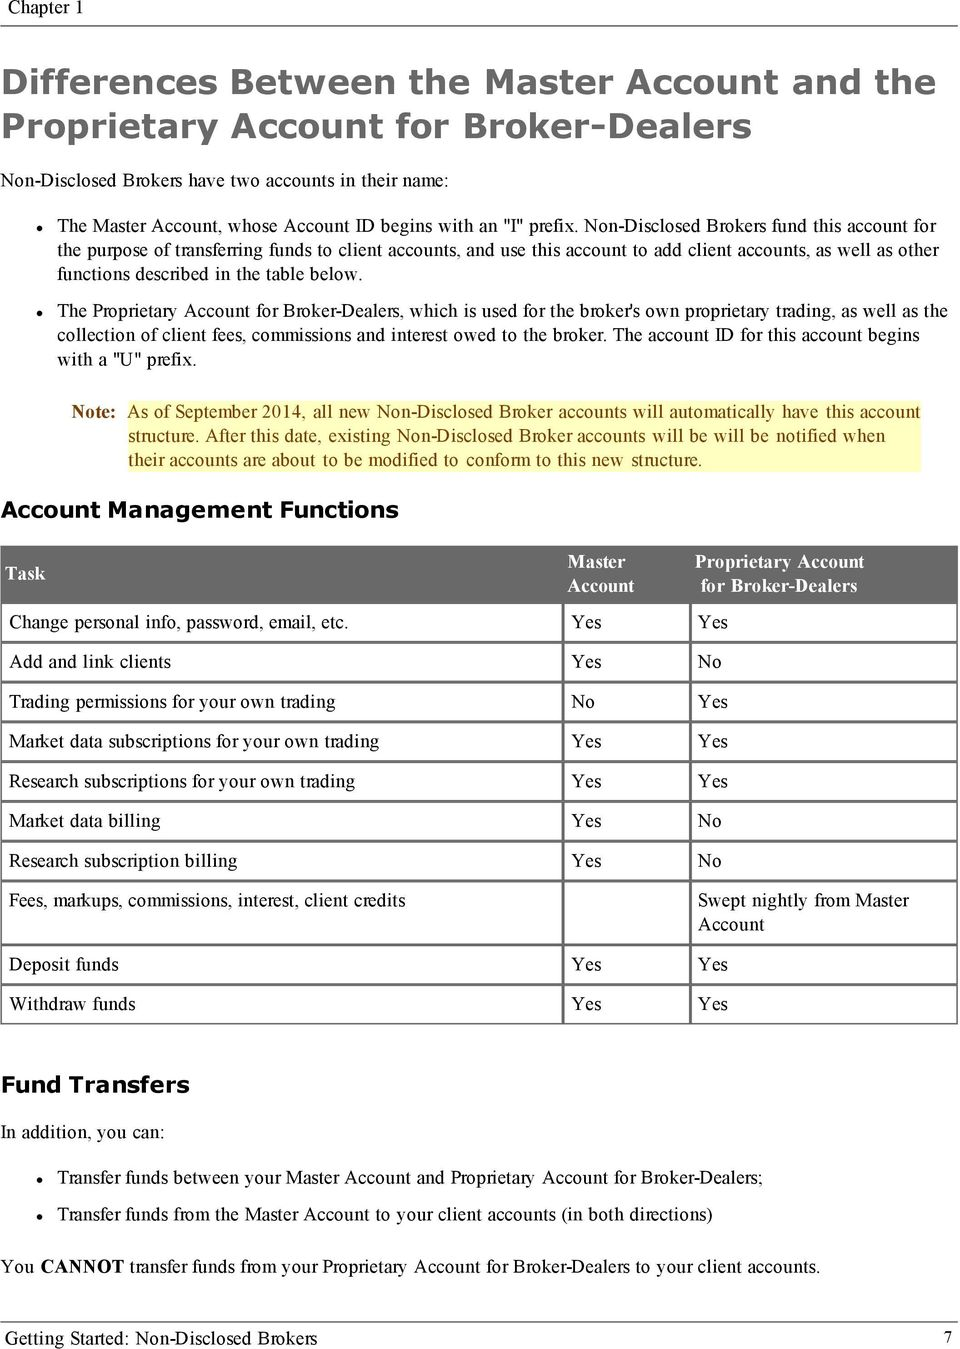 Non-Disclosed Brokers fund this account for the purpose of transferring funds to client accounts, and use this account to add client accounts, as well as other functions described in the table below.